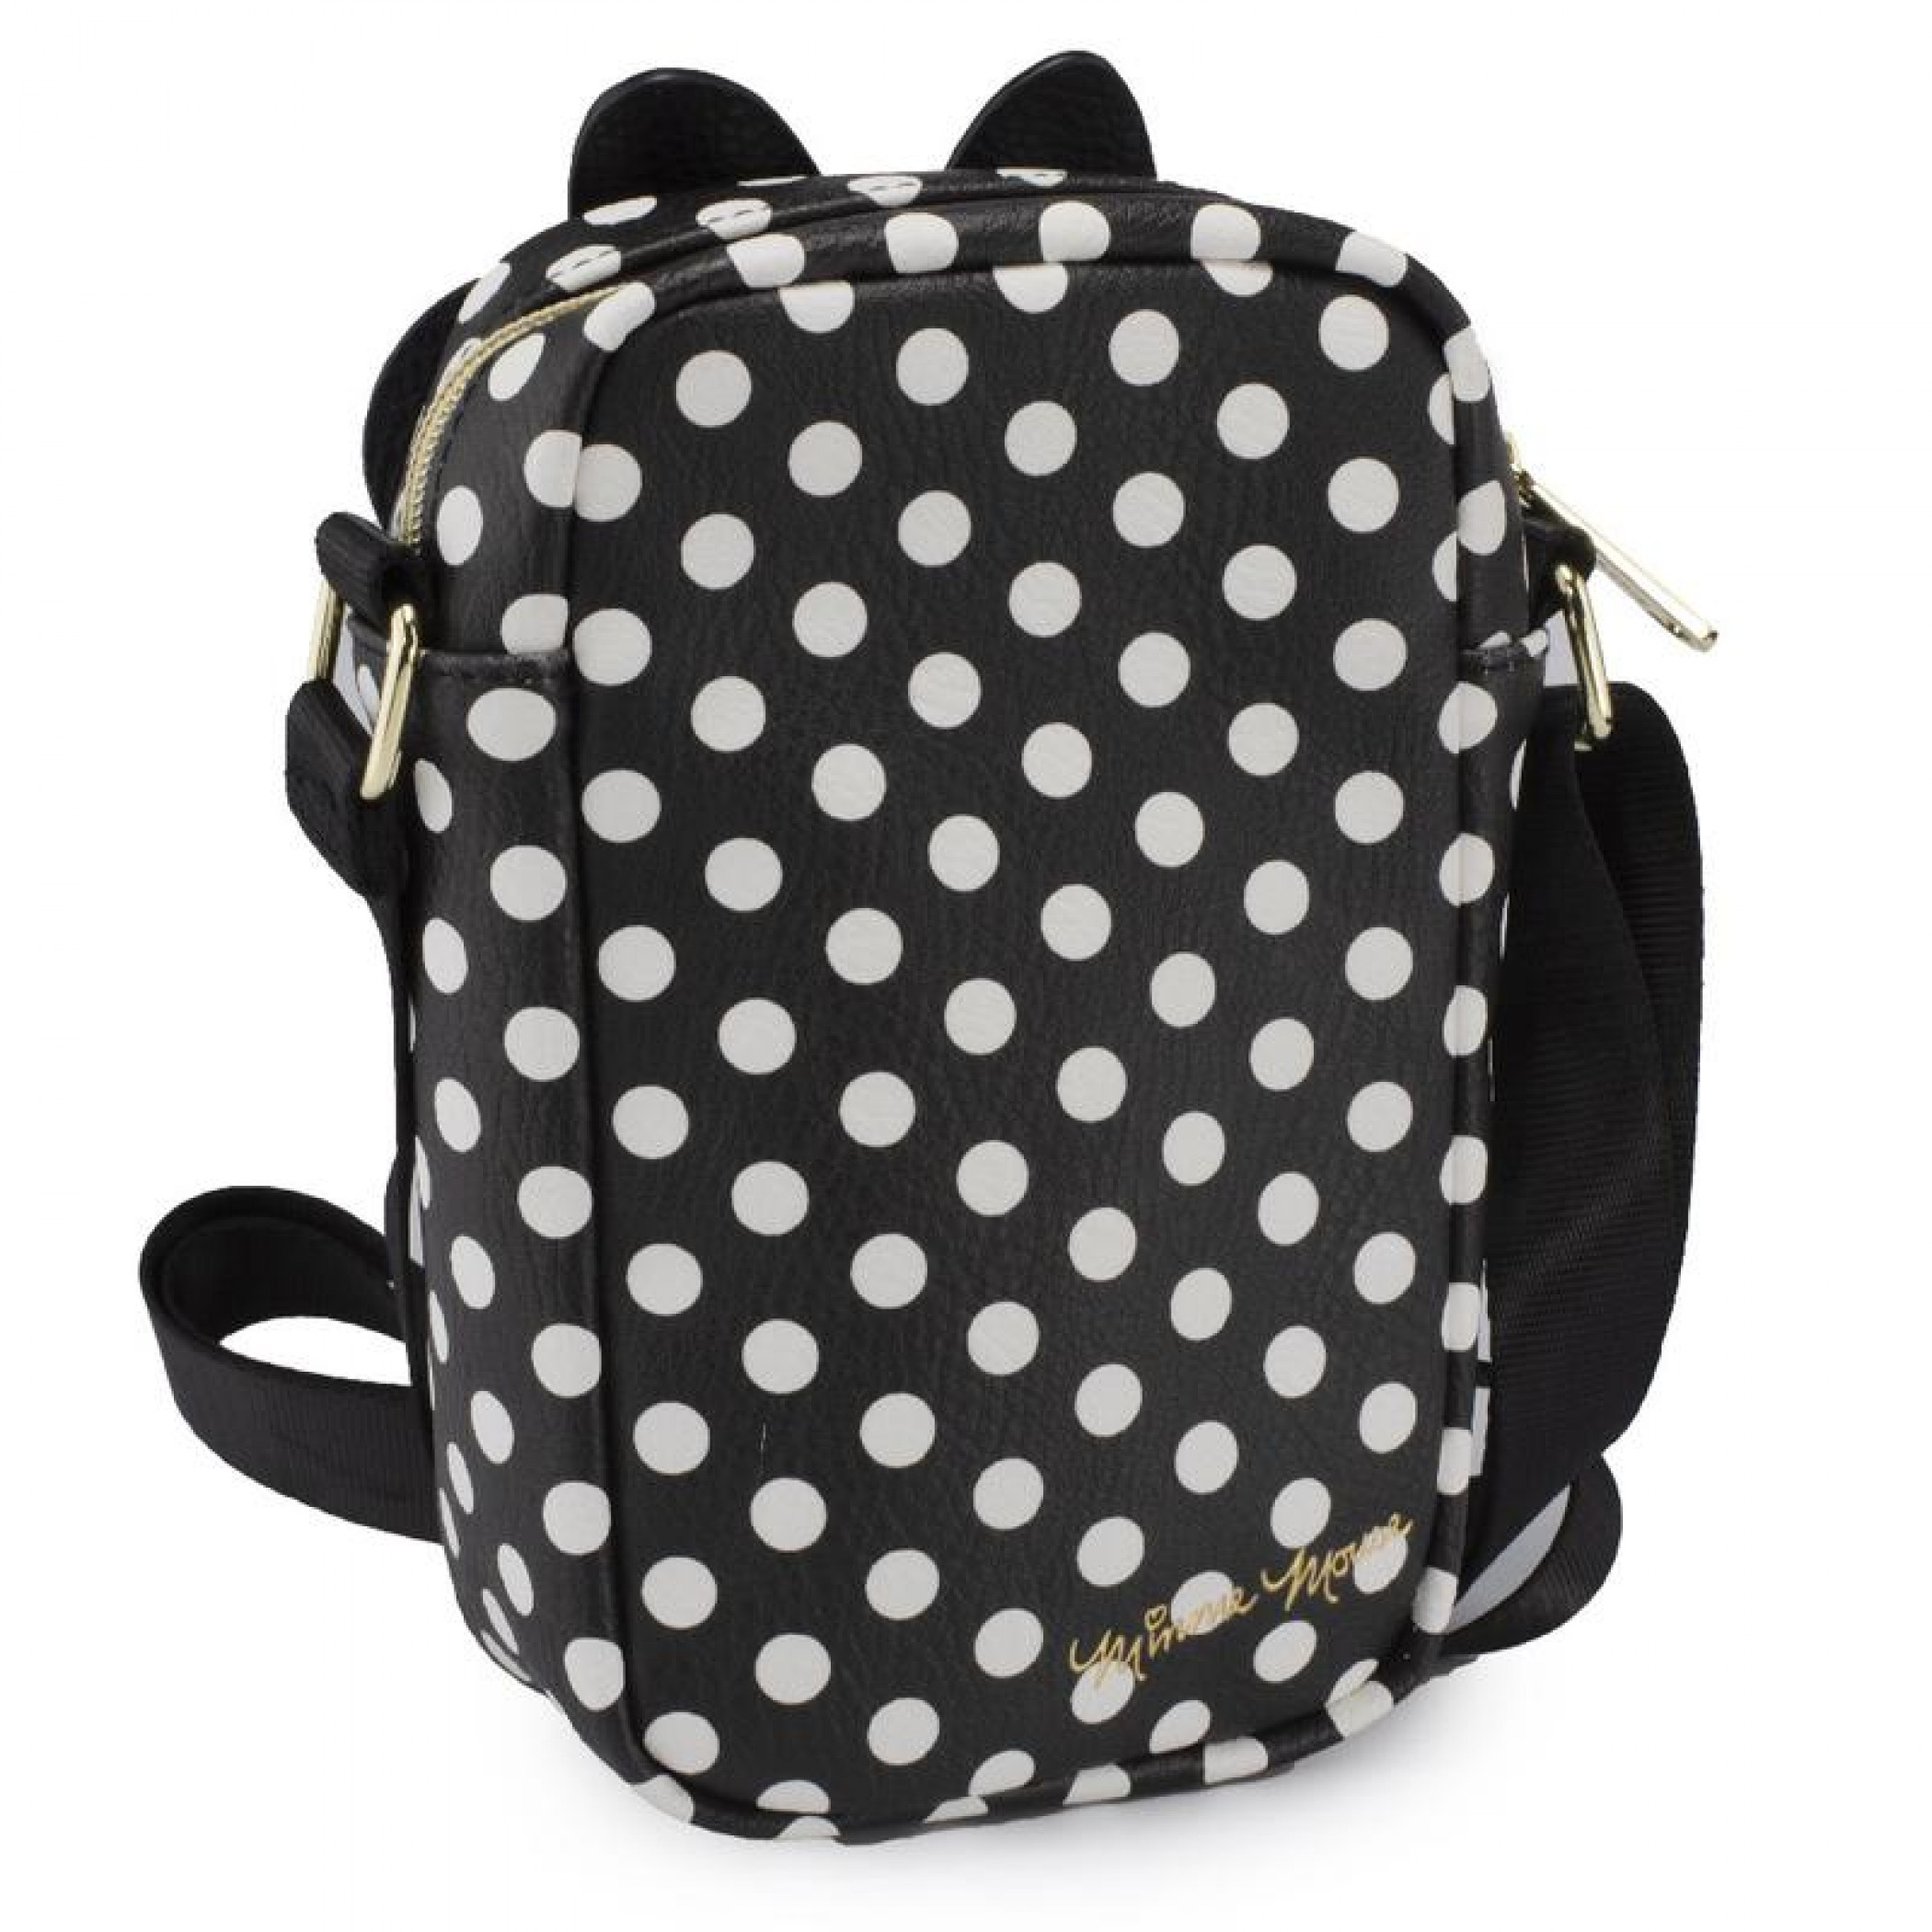 Disney Minnie Mouse Ears and Bow Patch Crossbody Vegan Leather Bag